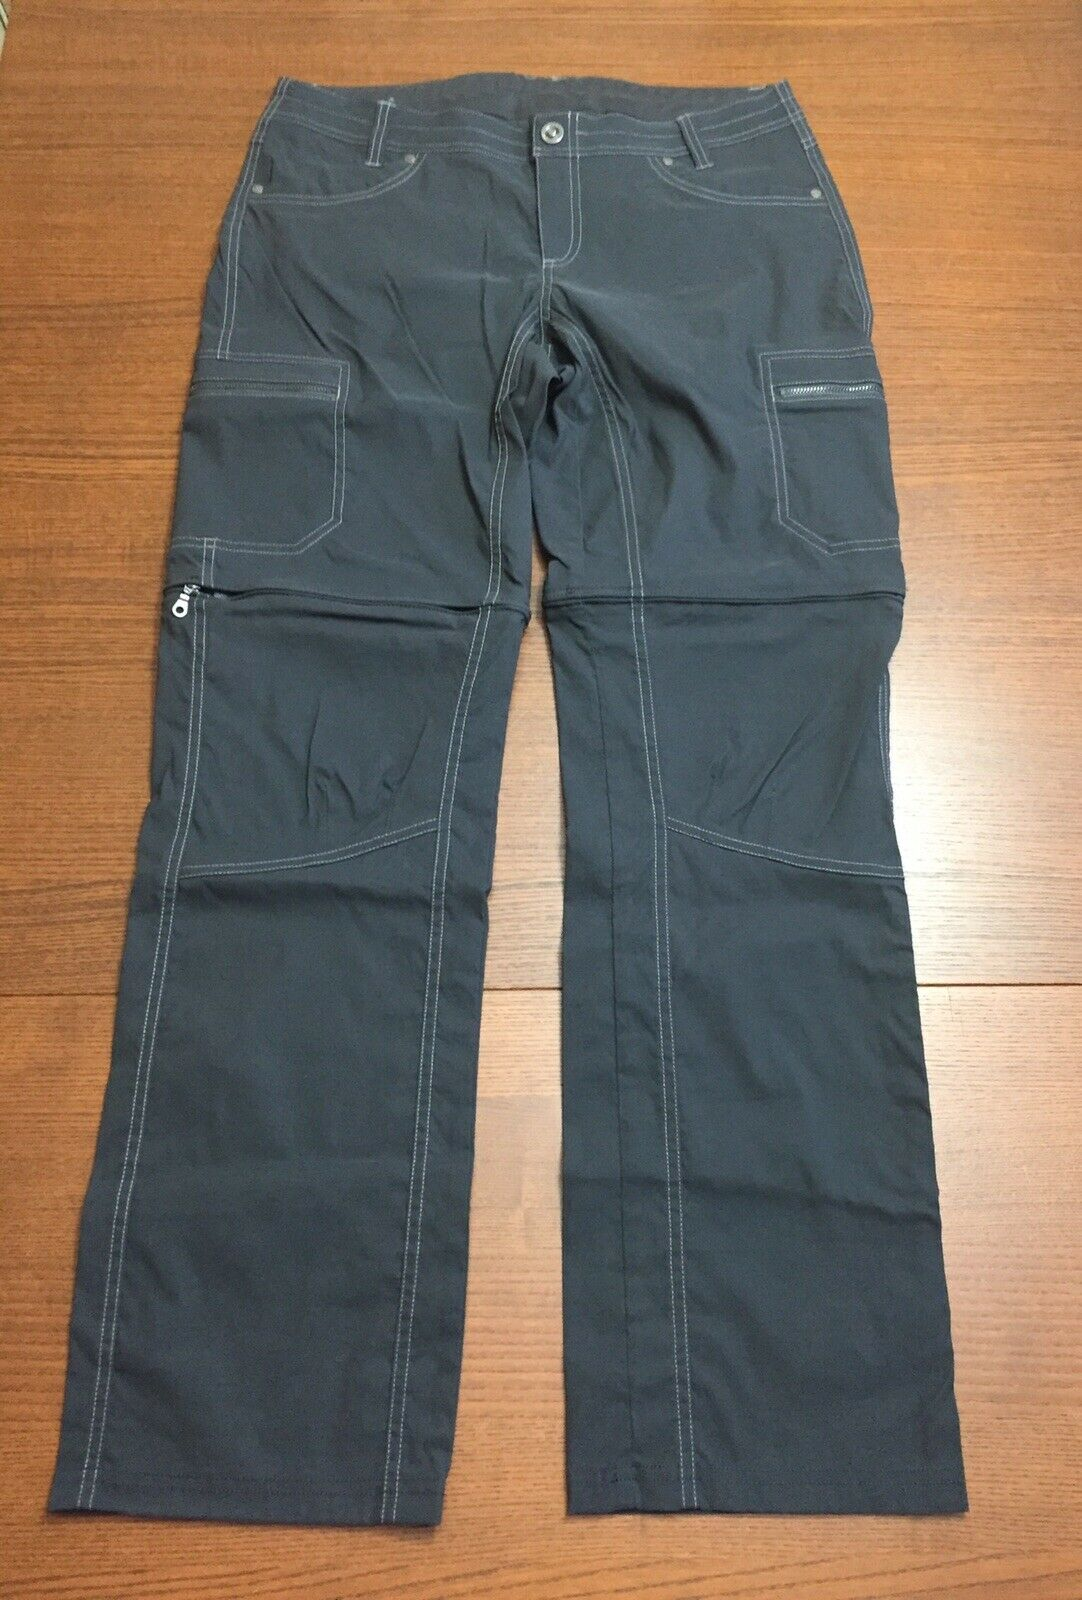 Women's Size 10  Kuhl Cliffside Congreenible Cargo Pants Drawstring Waist EUC   ️  come to choose your own sports style